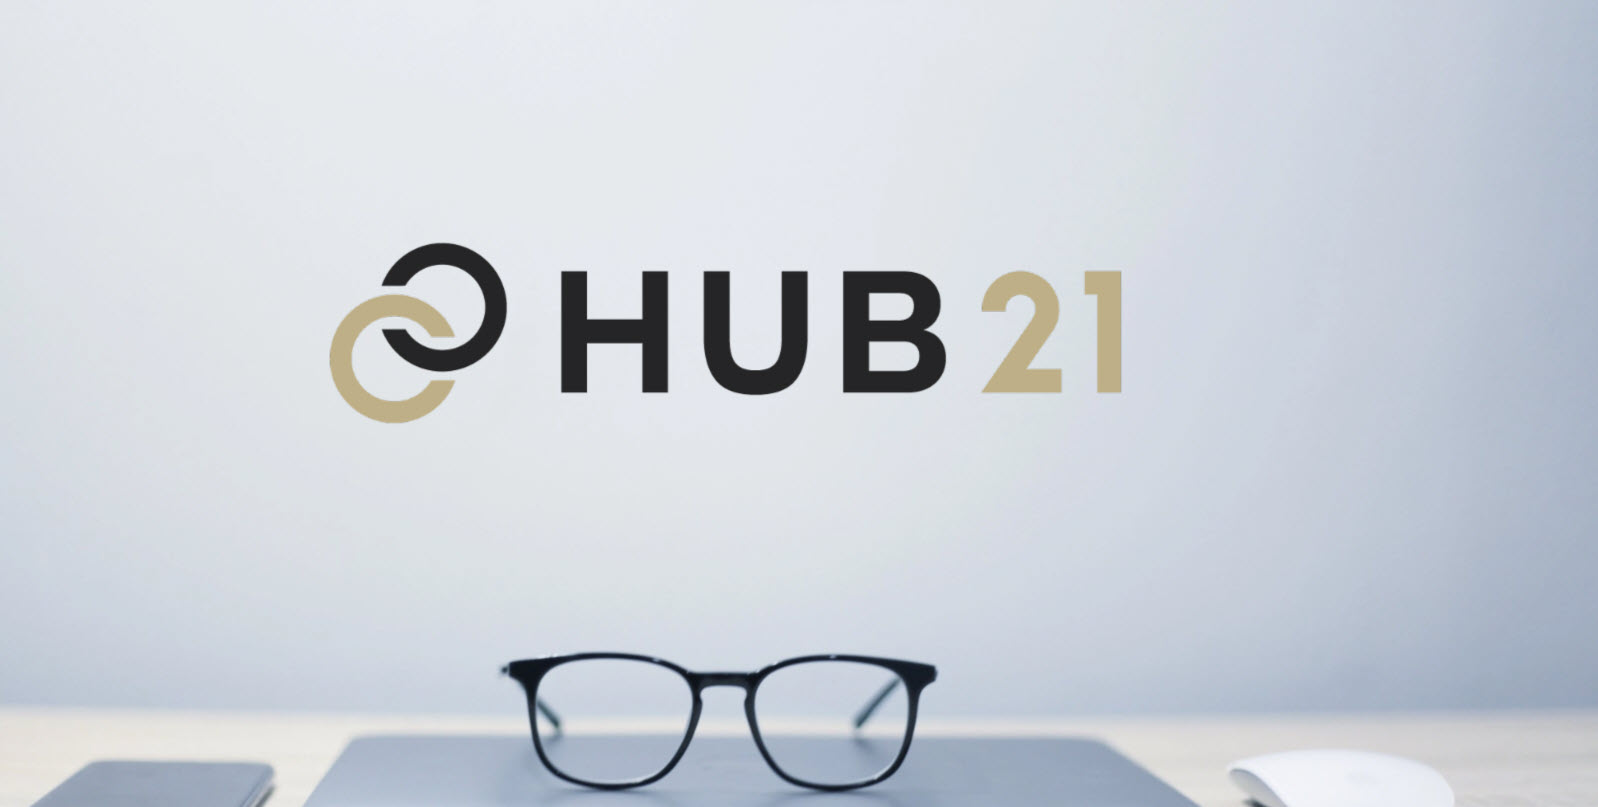 Technology Support hub 21